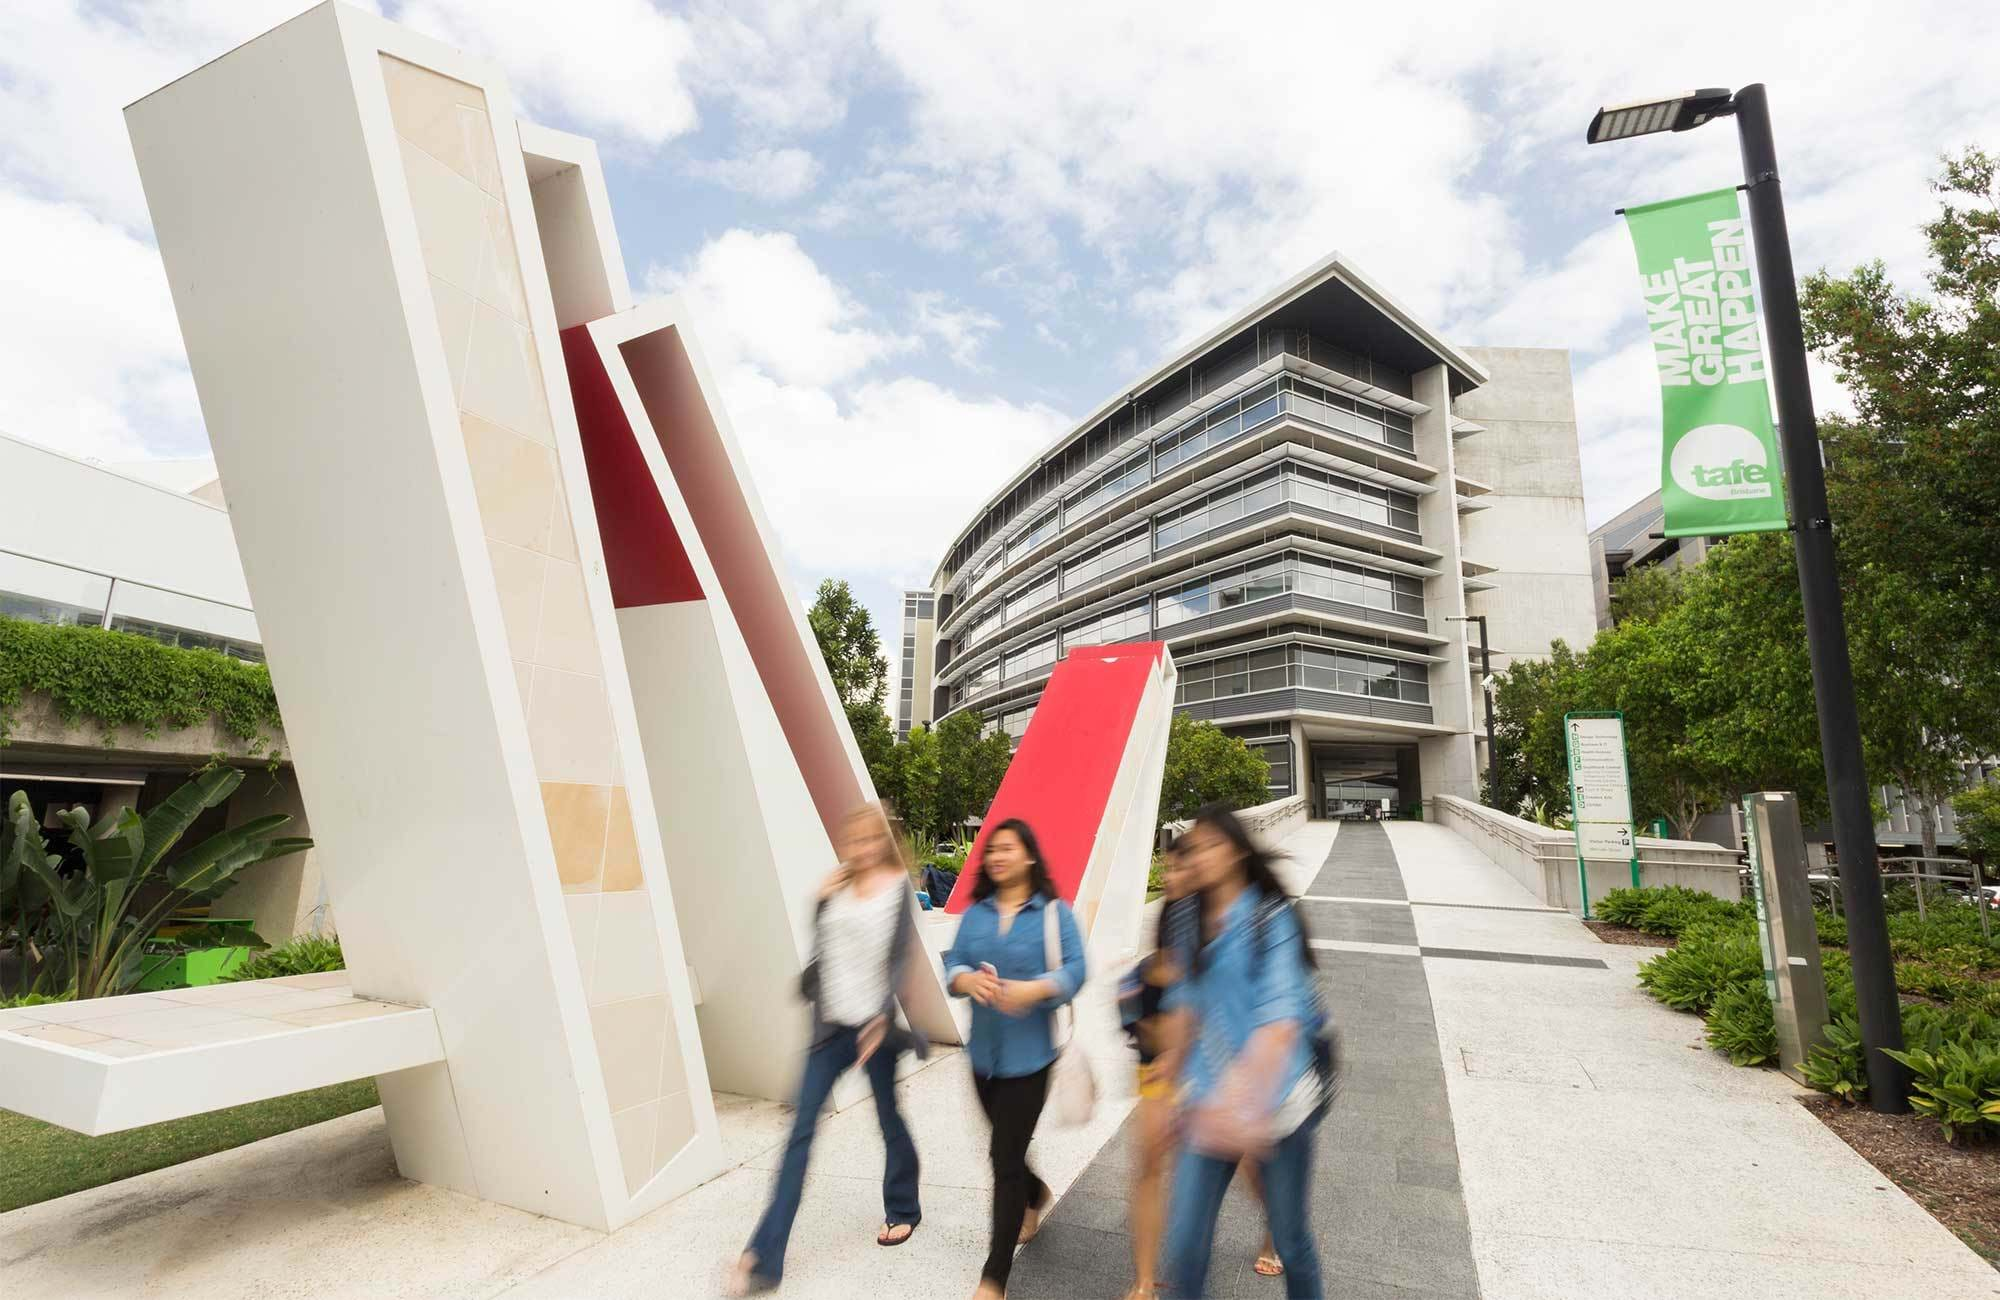 tafe-queensland-campus-building-and-students-cover